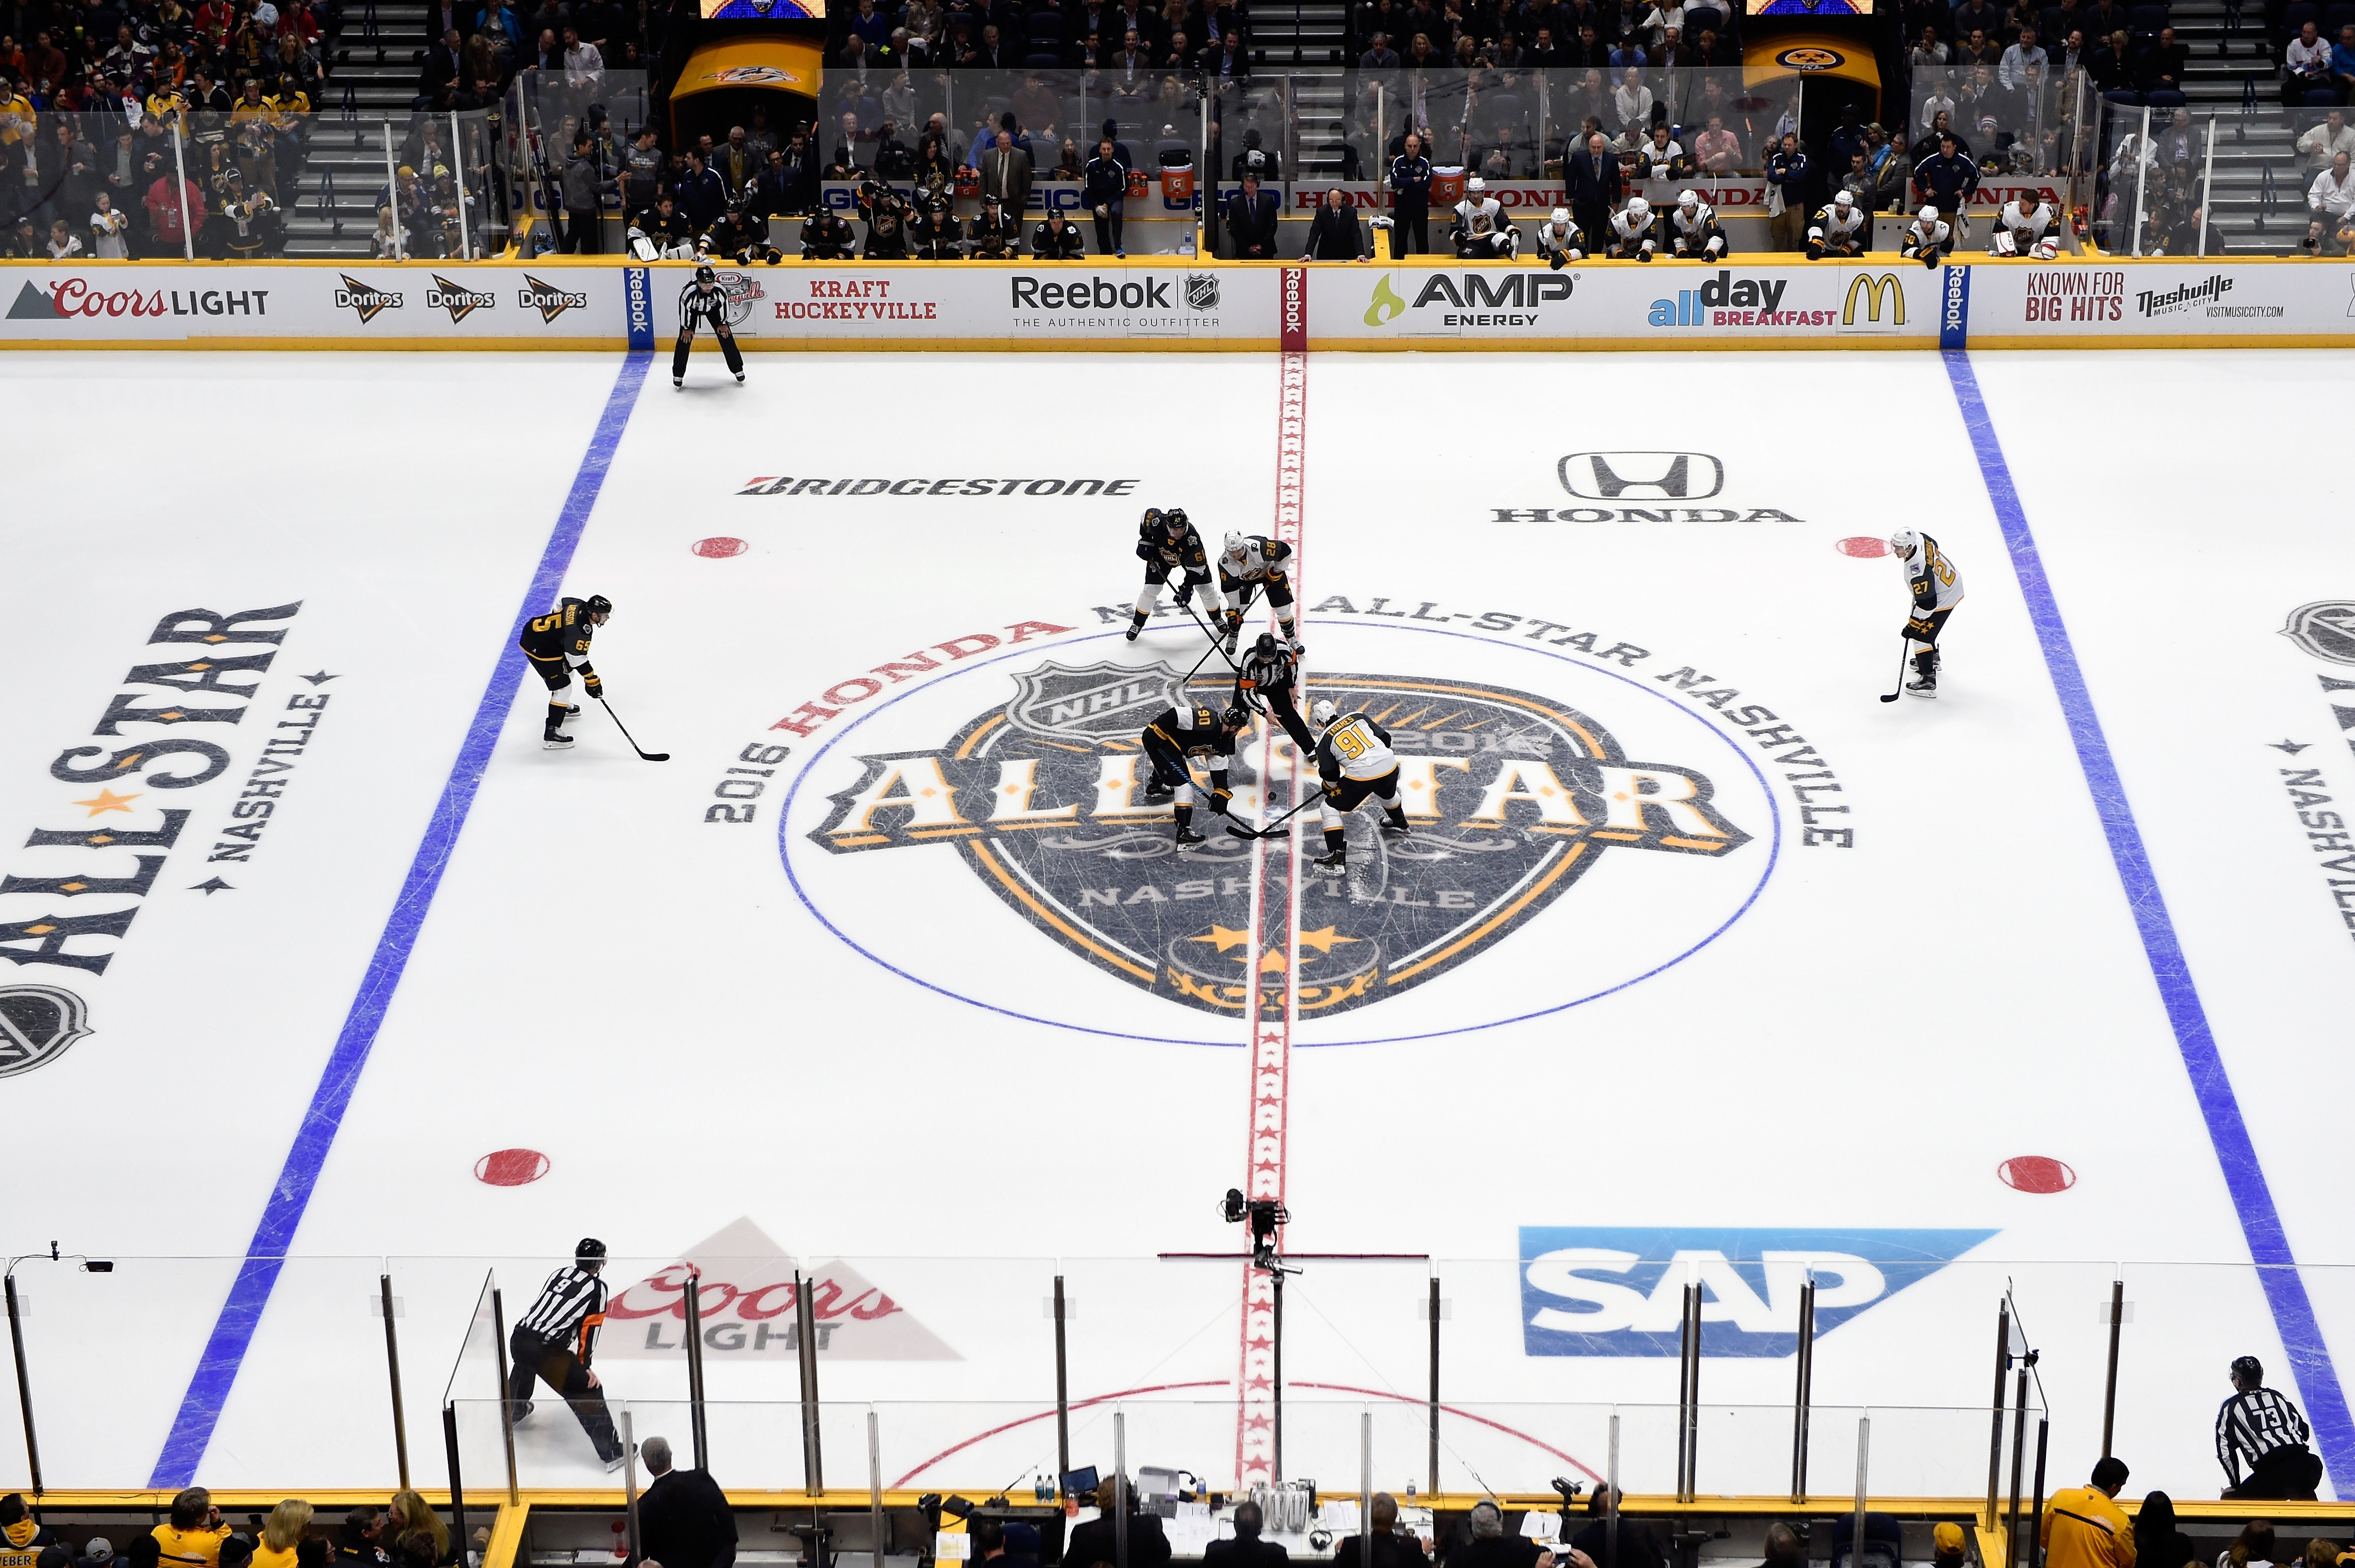 John Tavares of the New York Islanders faces off against Ryan O'Reilly of the Buffalo Sabres to start the Eastern Conference semifinal game between the Atlantic Division and the Metropolitan Division. (Photo by Sanford Myers/Getty Images)